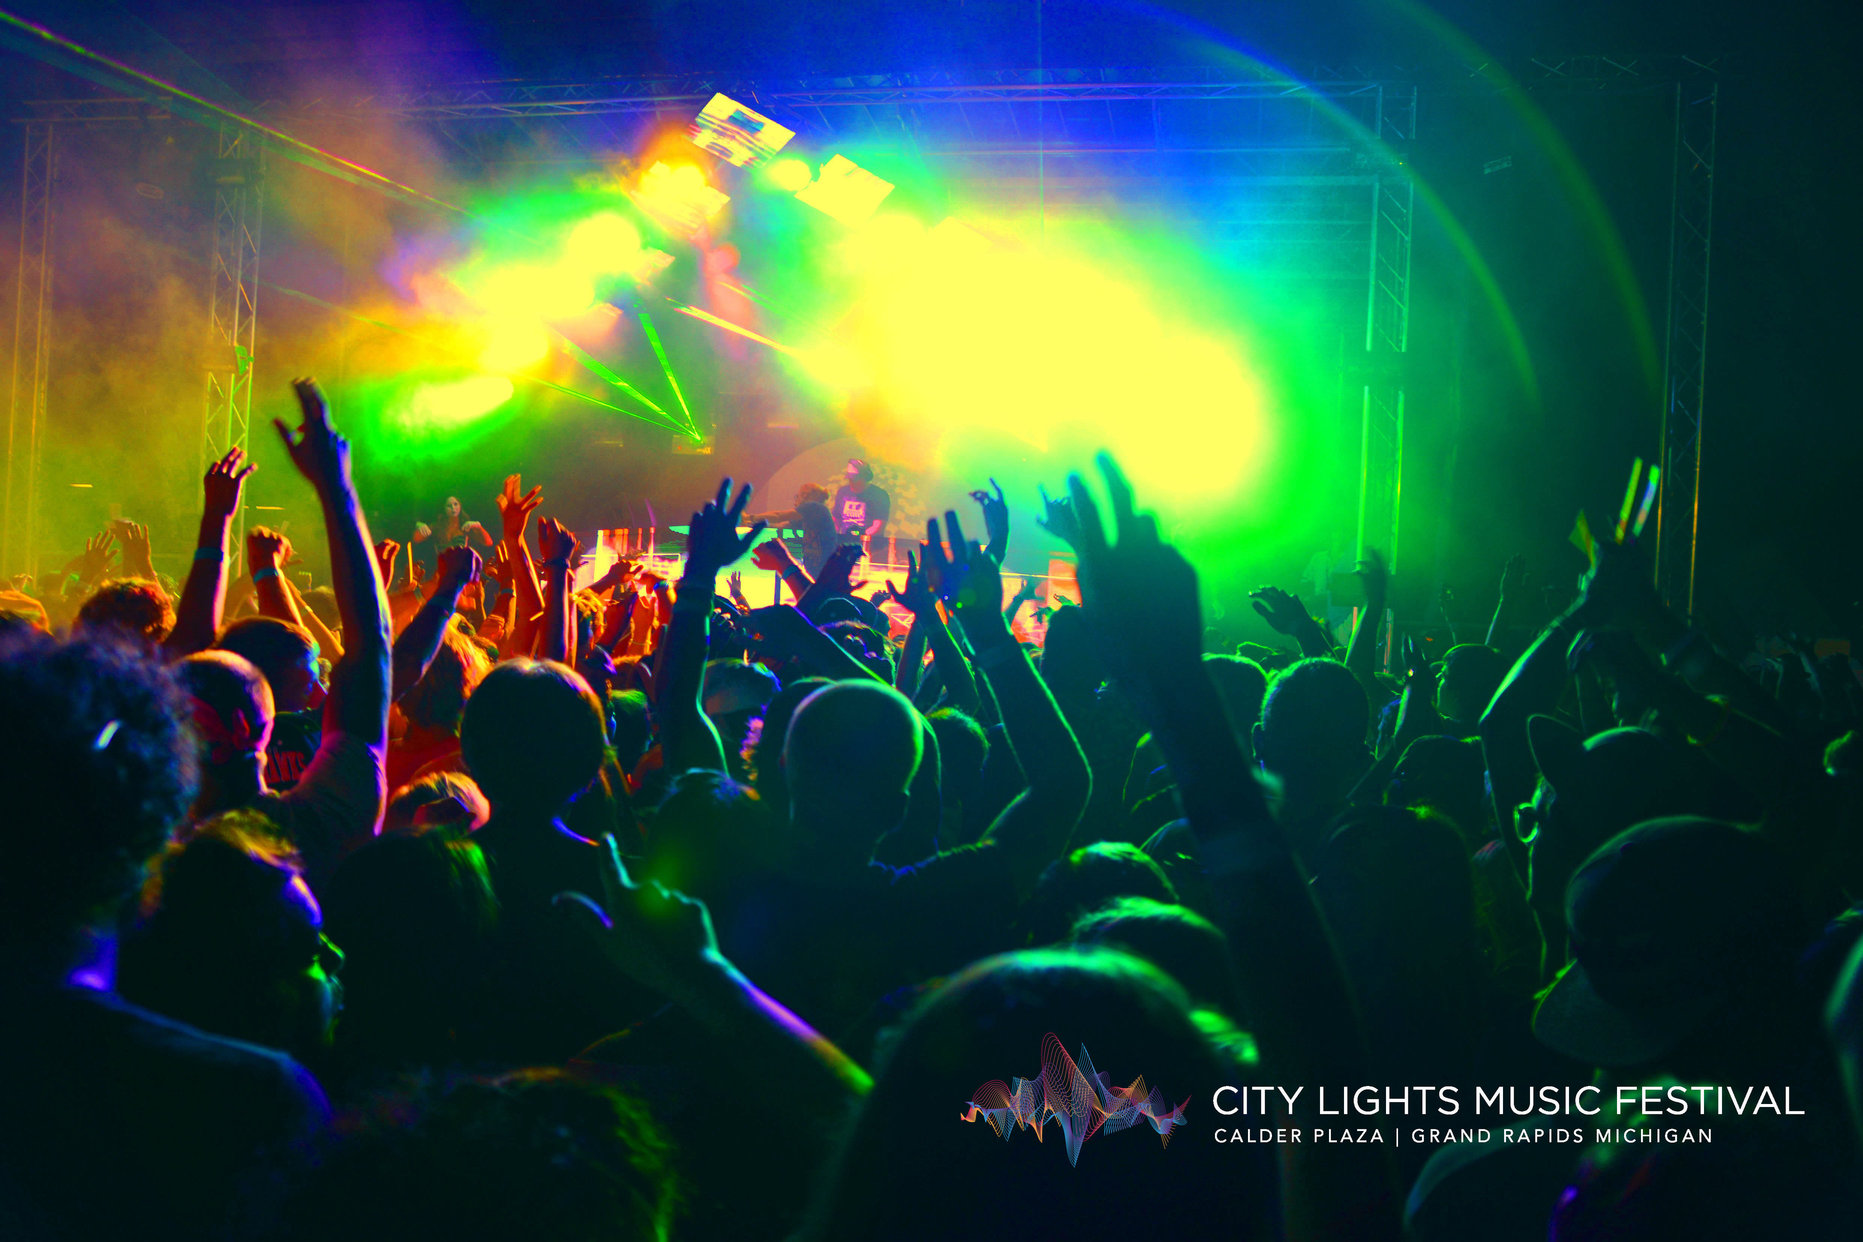 Tickets For City Lights Music Festival 2013 In Grand Rapids From ShowClix